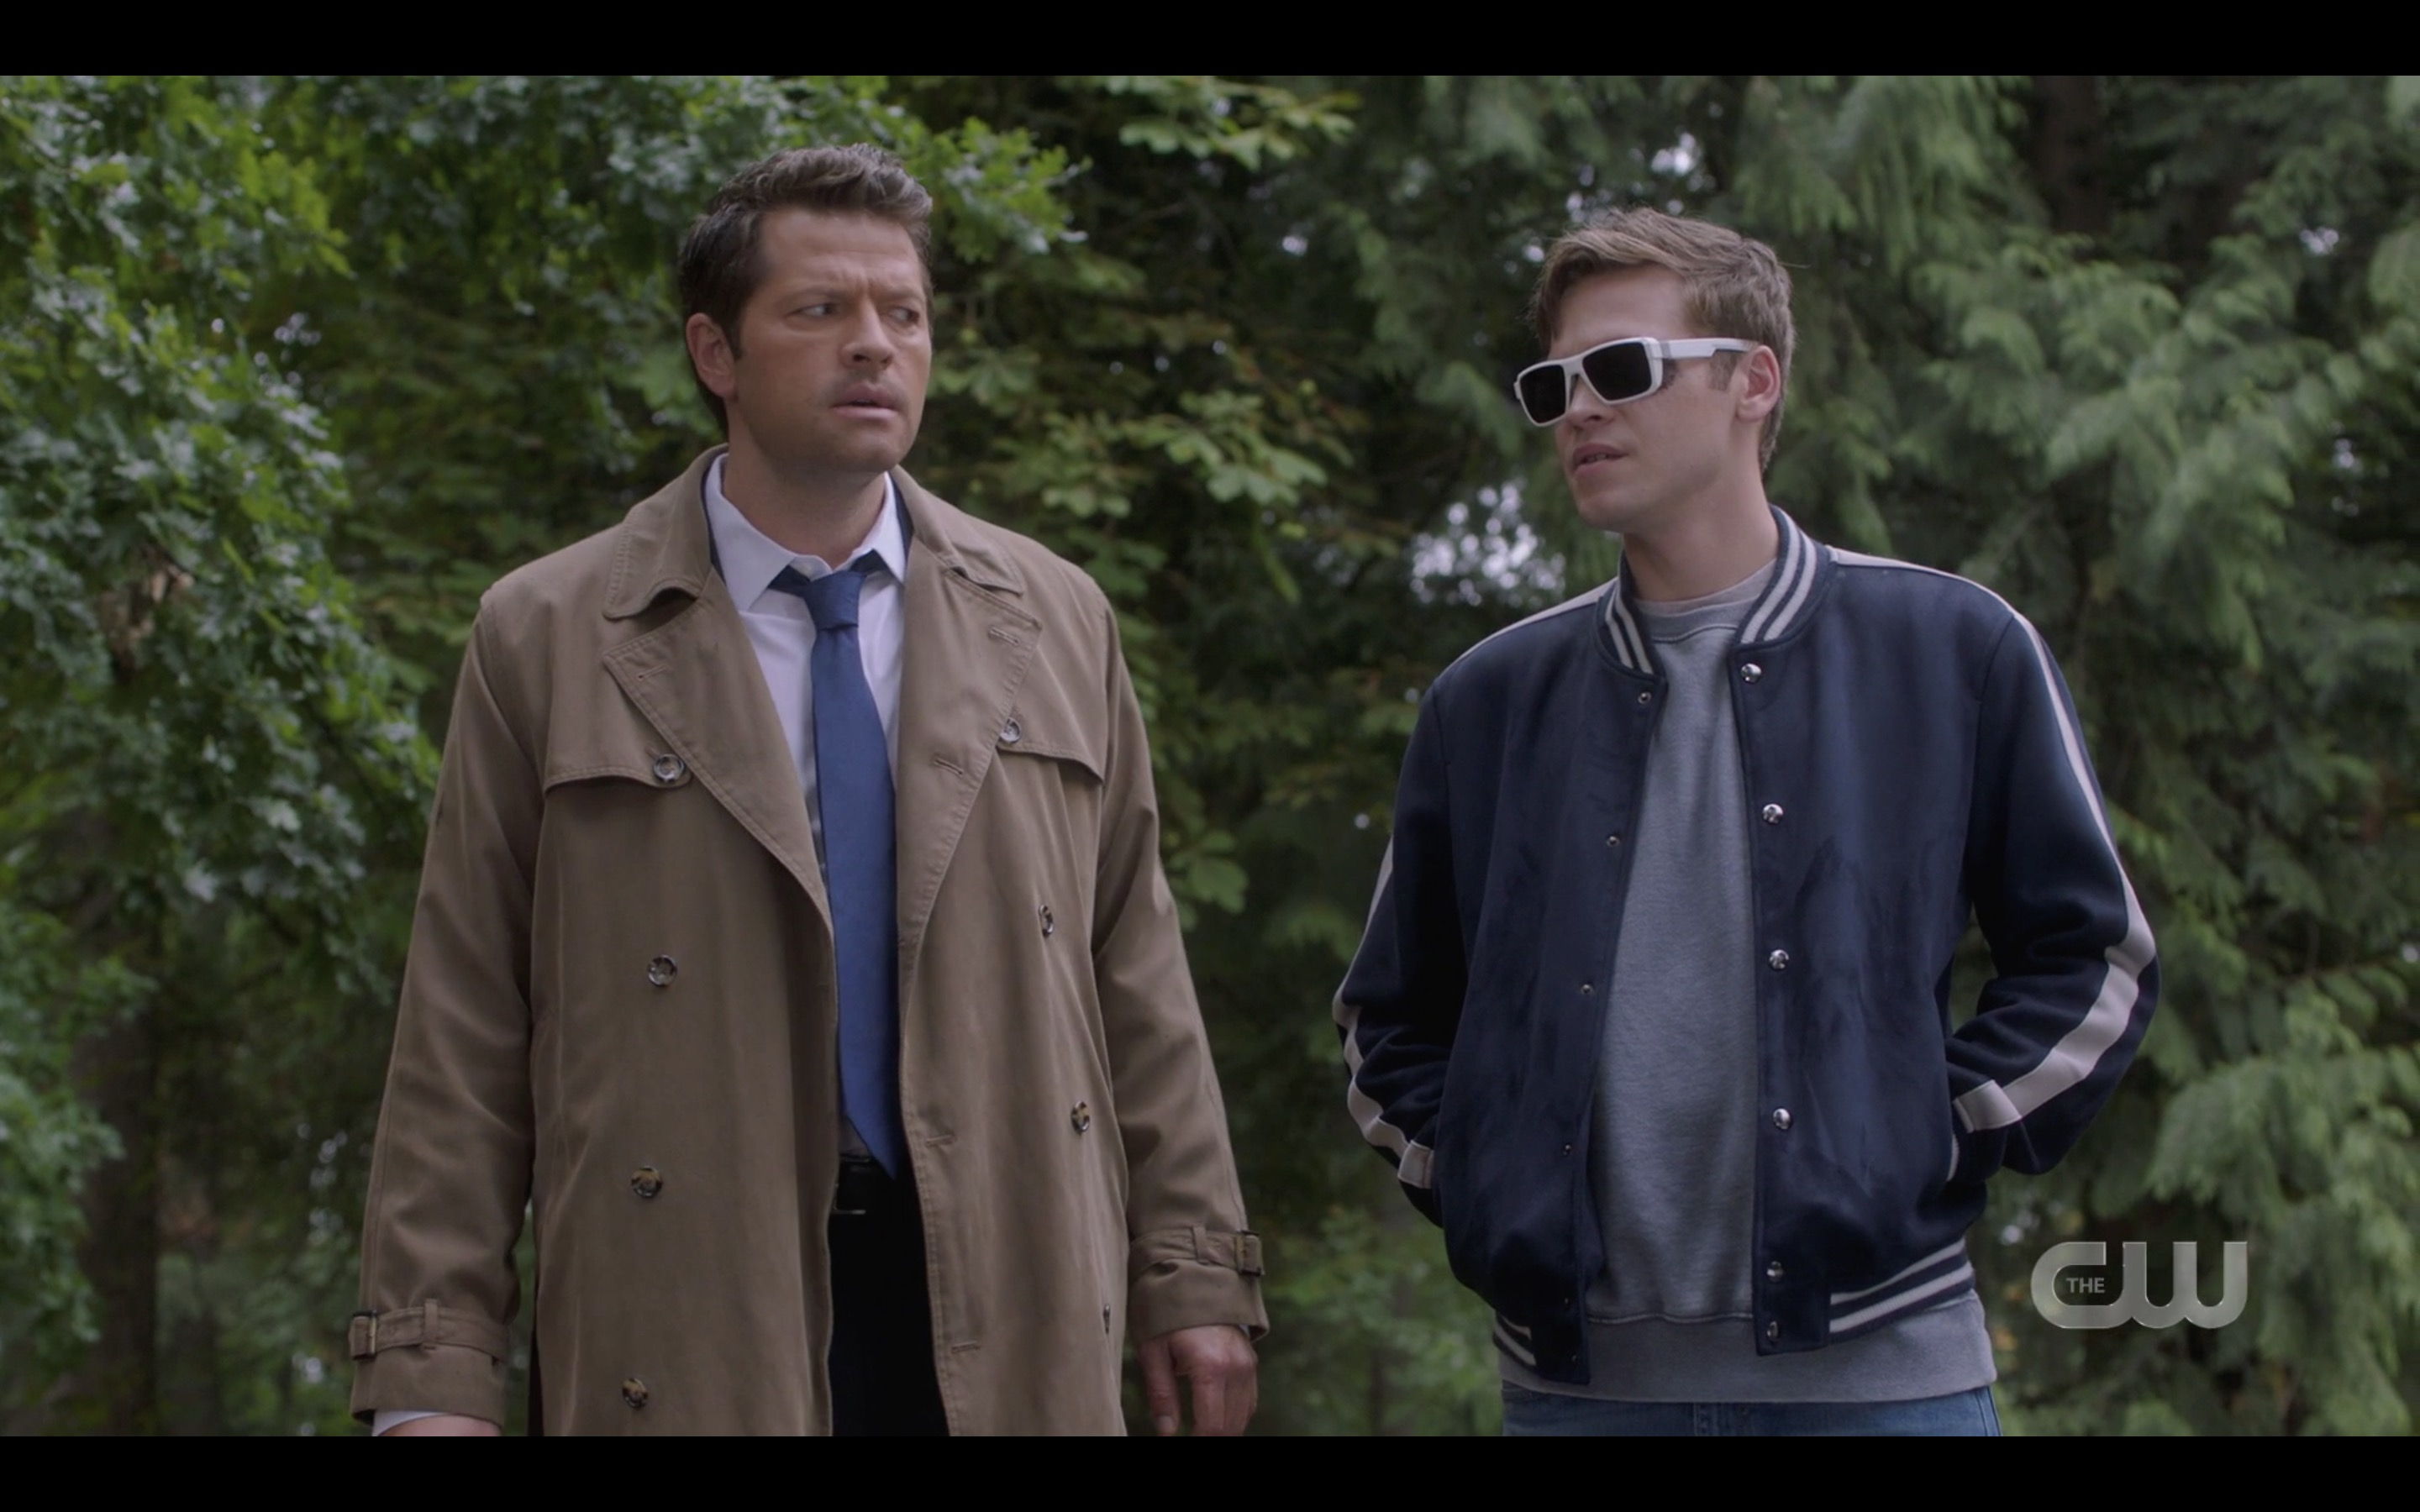 https://thewinchesterfamilybusiness.com/images/SeasonFifteen/15_03_The-Rupture/Screenshot_2019-10-25_13.04.12.JPG